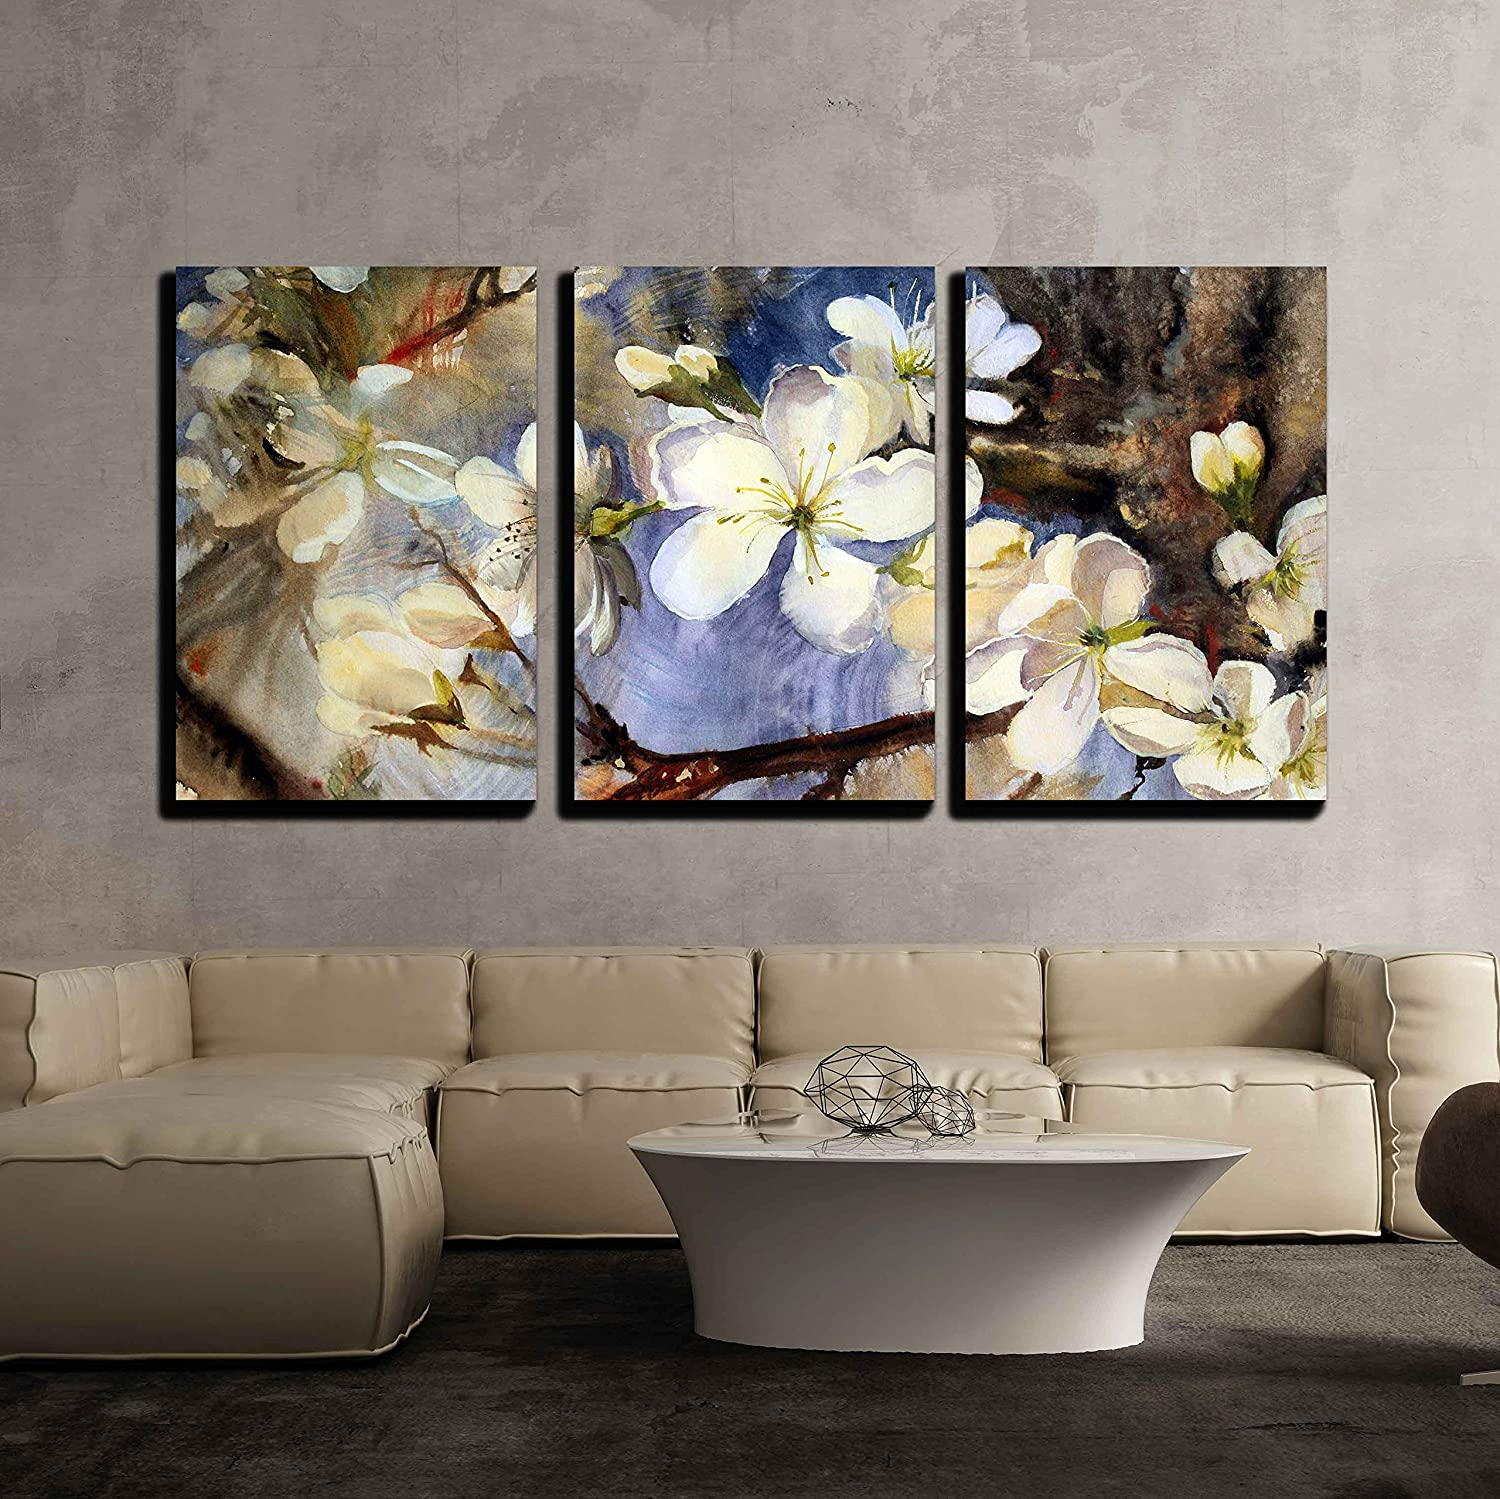 Watercolor Painting Of The Blooming Spring Tree Branches With White